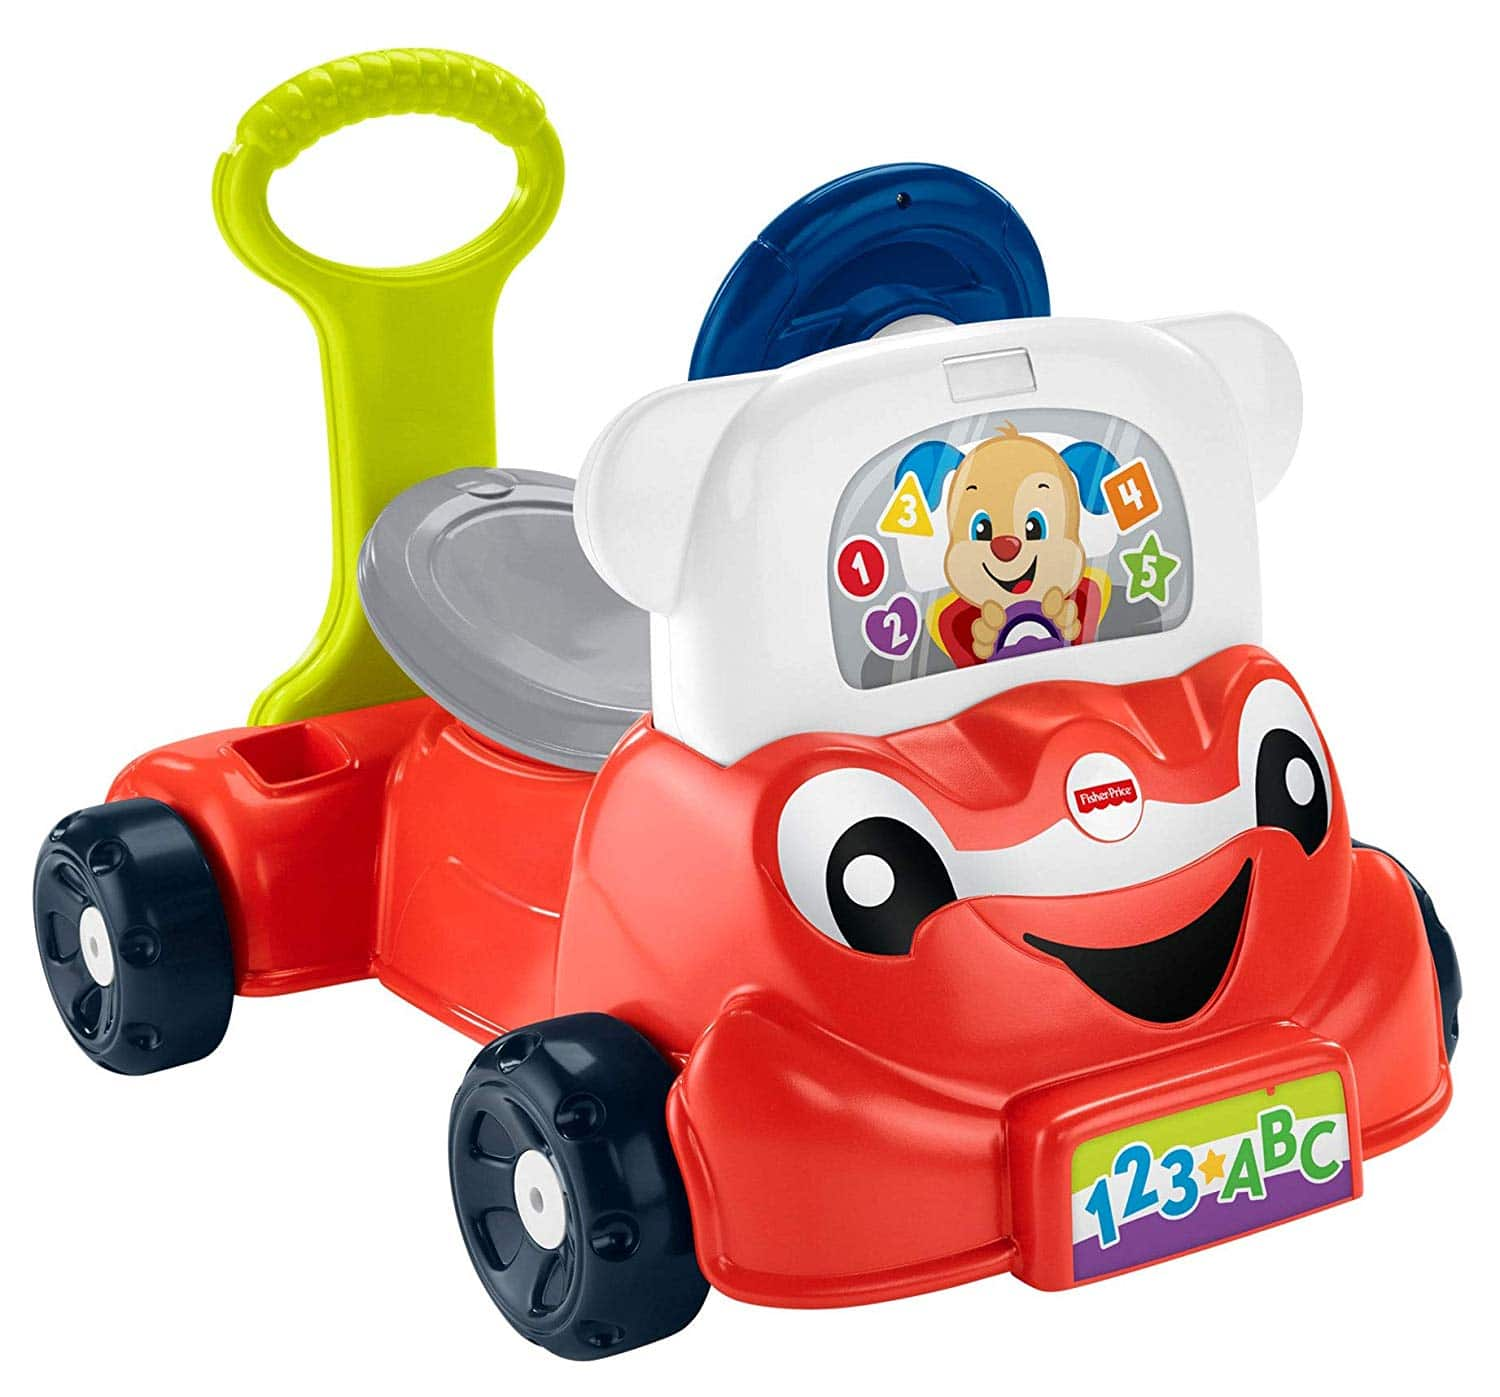 Fisher-Price Laugh & Learn 3-in-1 Smart Car $30 + Free Shipping